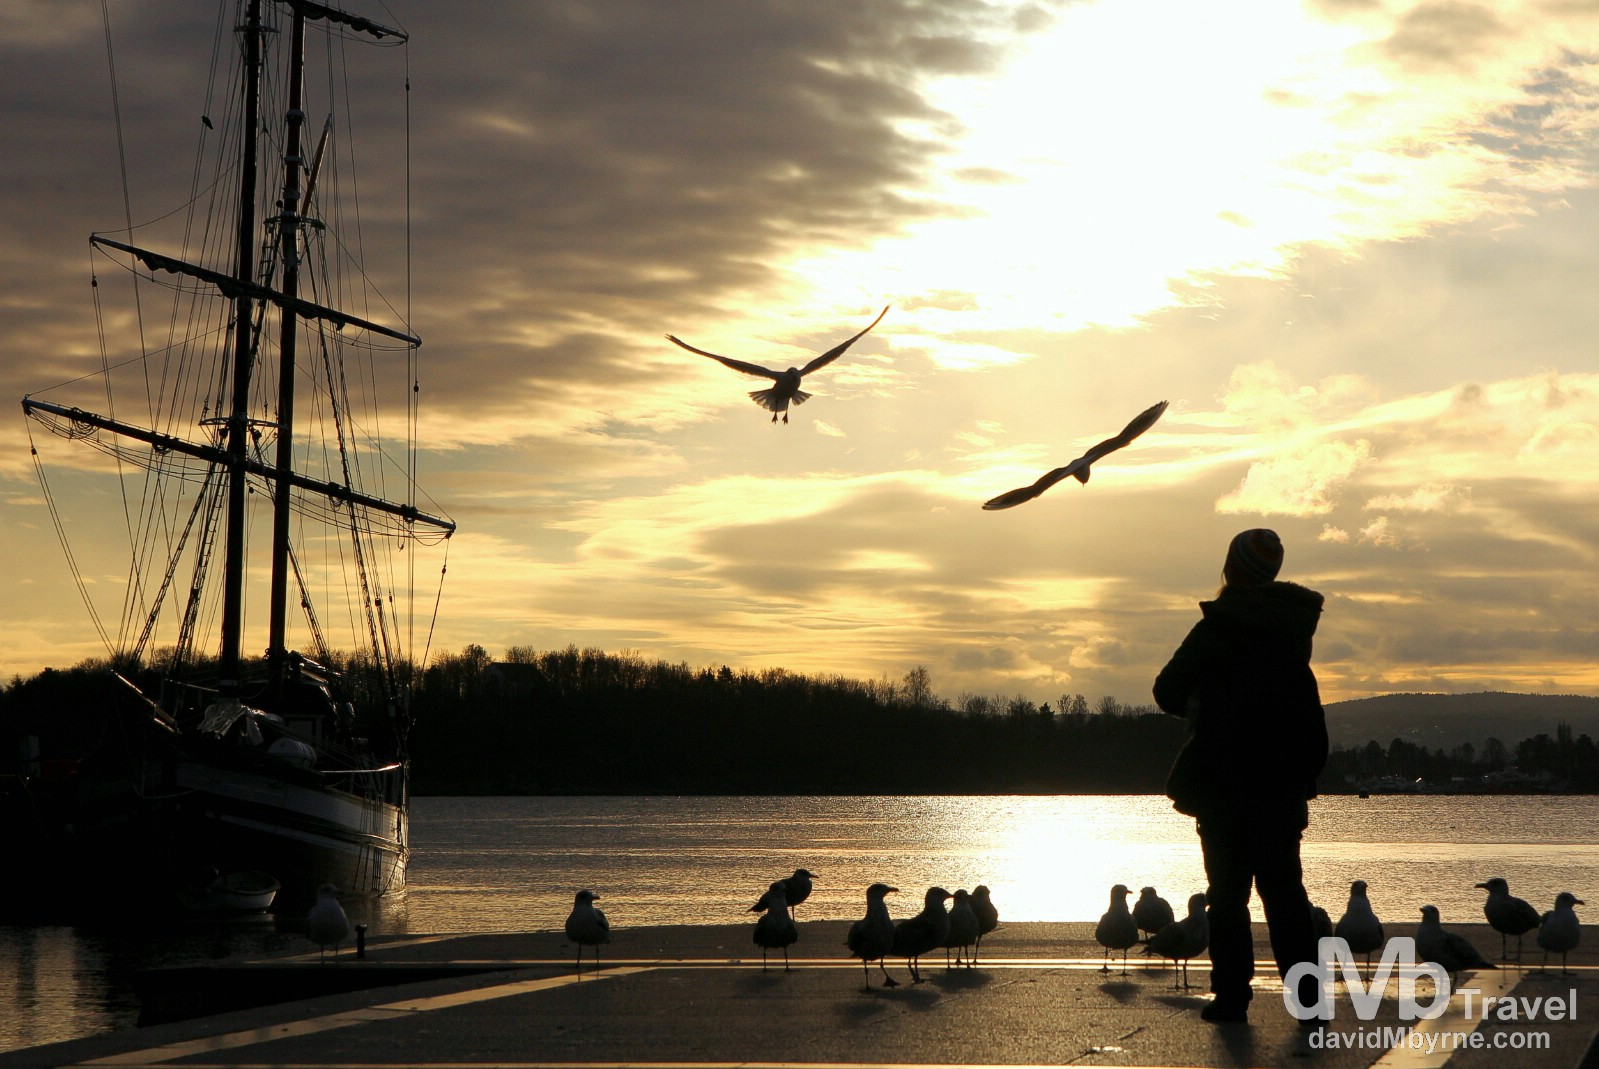 Sunset silhouettes & shadows by the waterfront in Oslo, Norway. November 29th 2012.